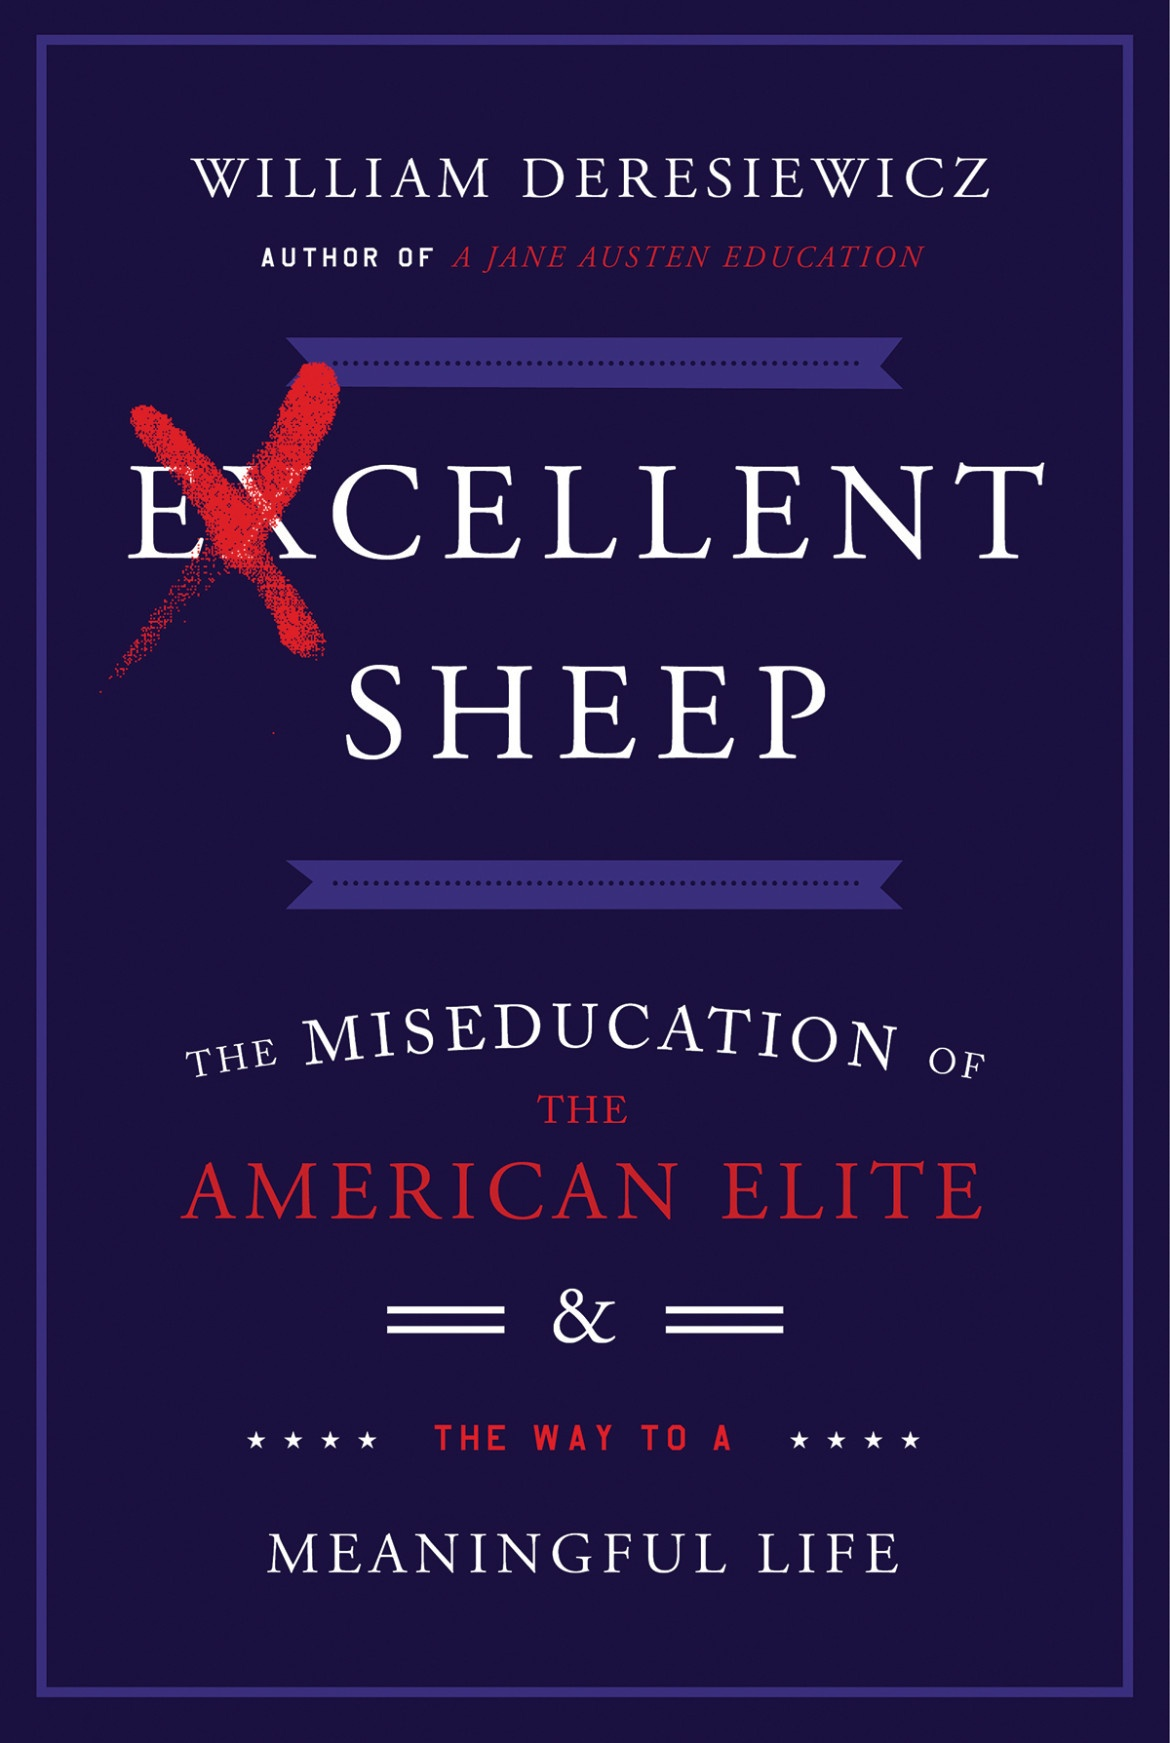 excellent-sheep-book-cover-1170x1743